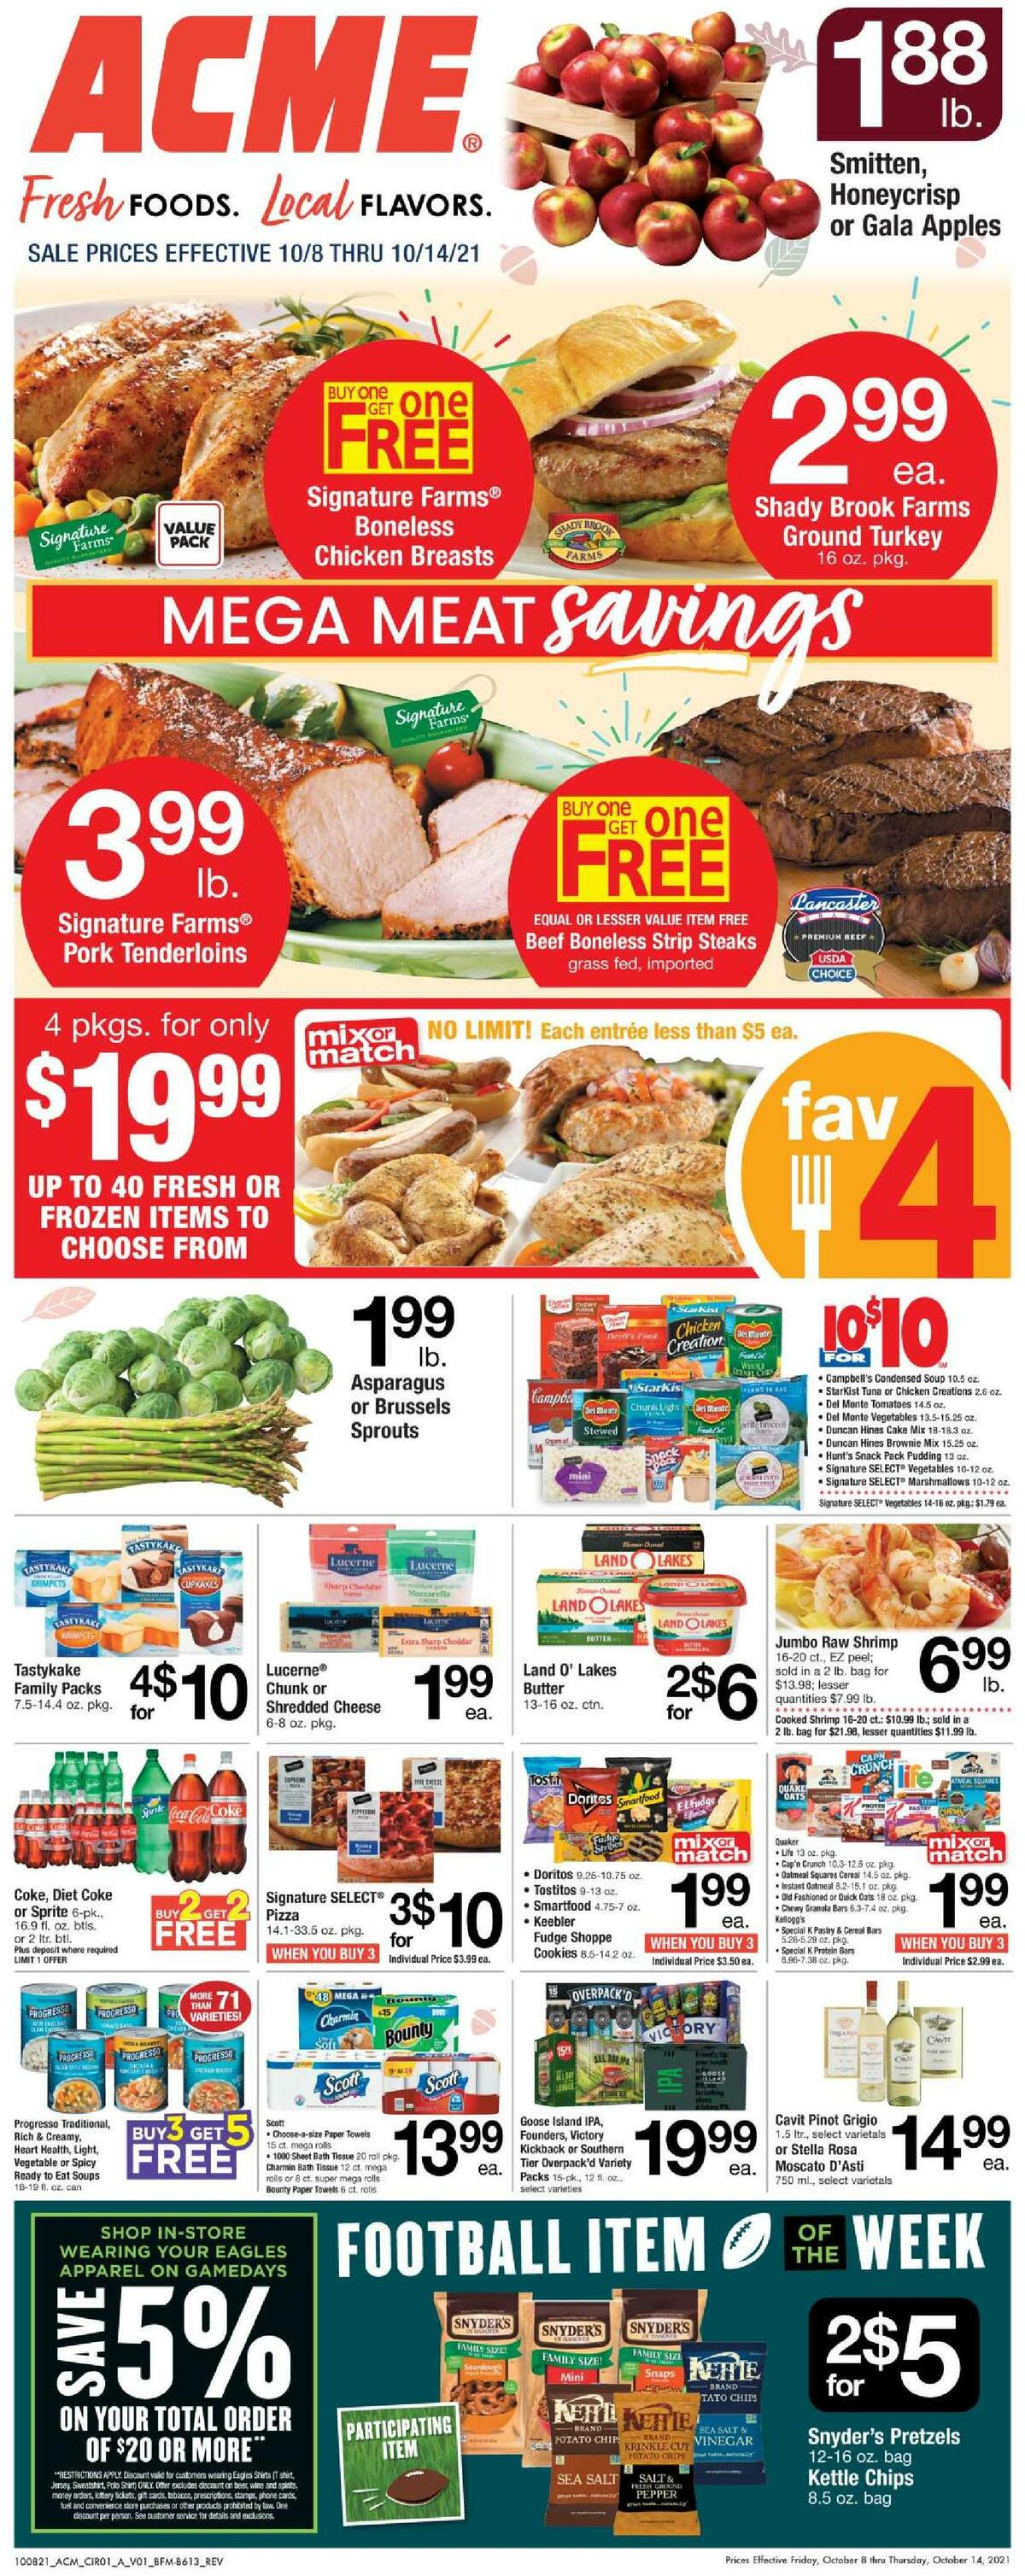 ACME Markets Weekly Ad from October 8